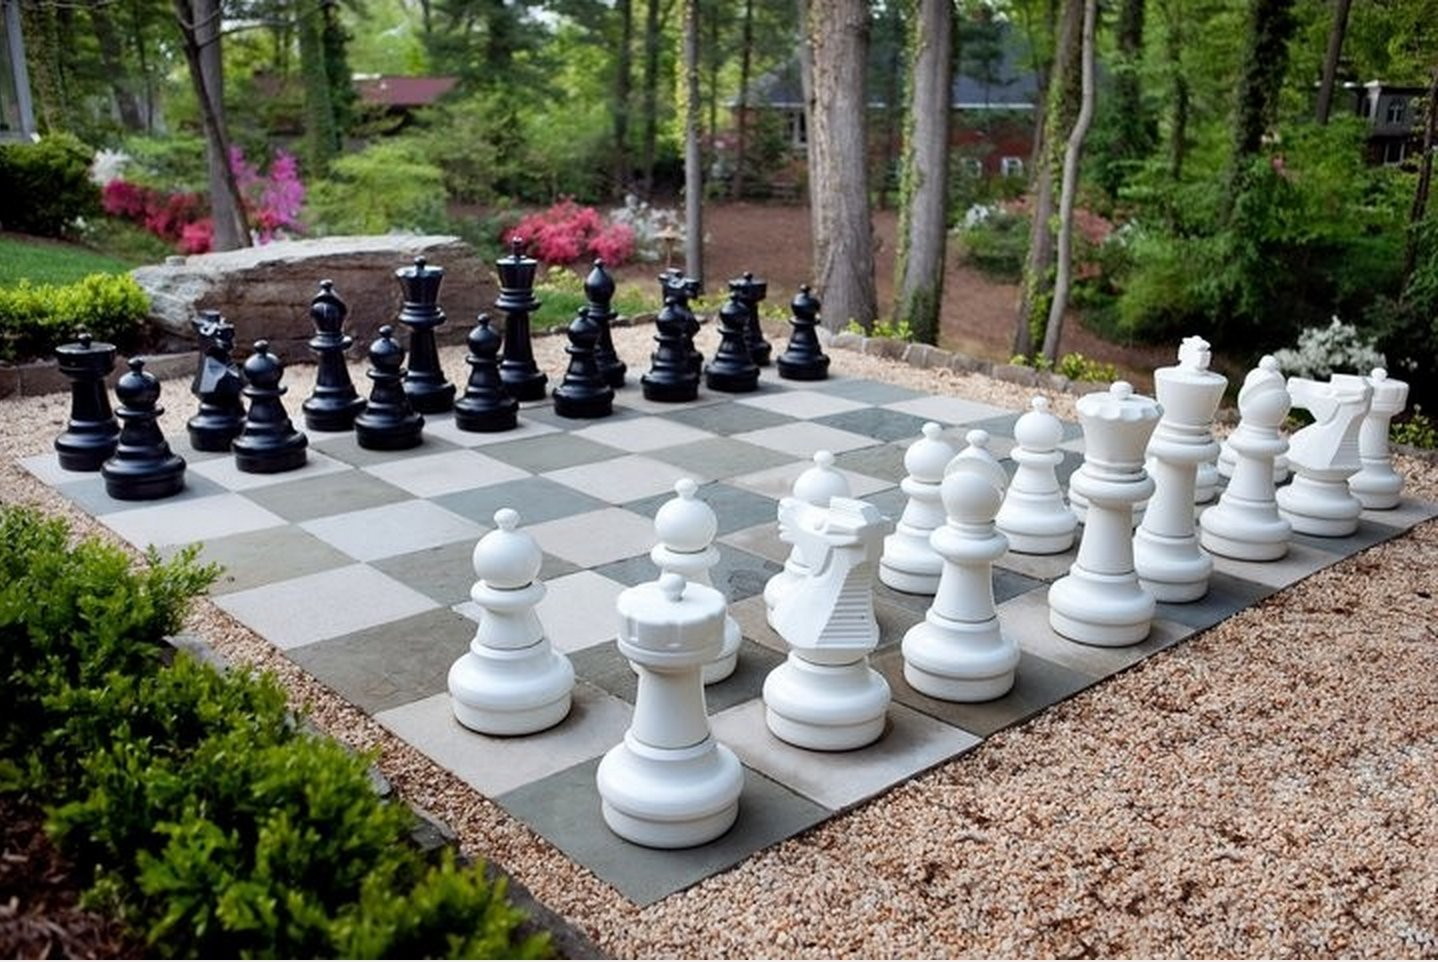 MegaChess Giant Premium Chess Pieces Complete Set with 25 Inch Tall King - Black and White by MegaChess